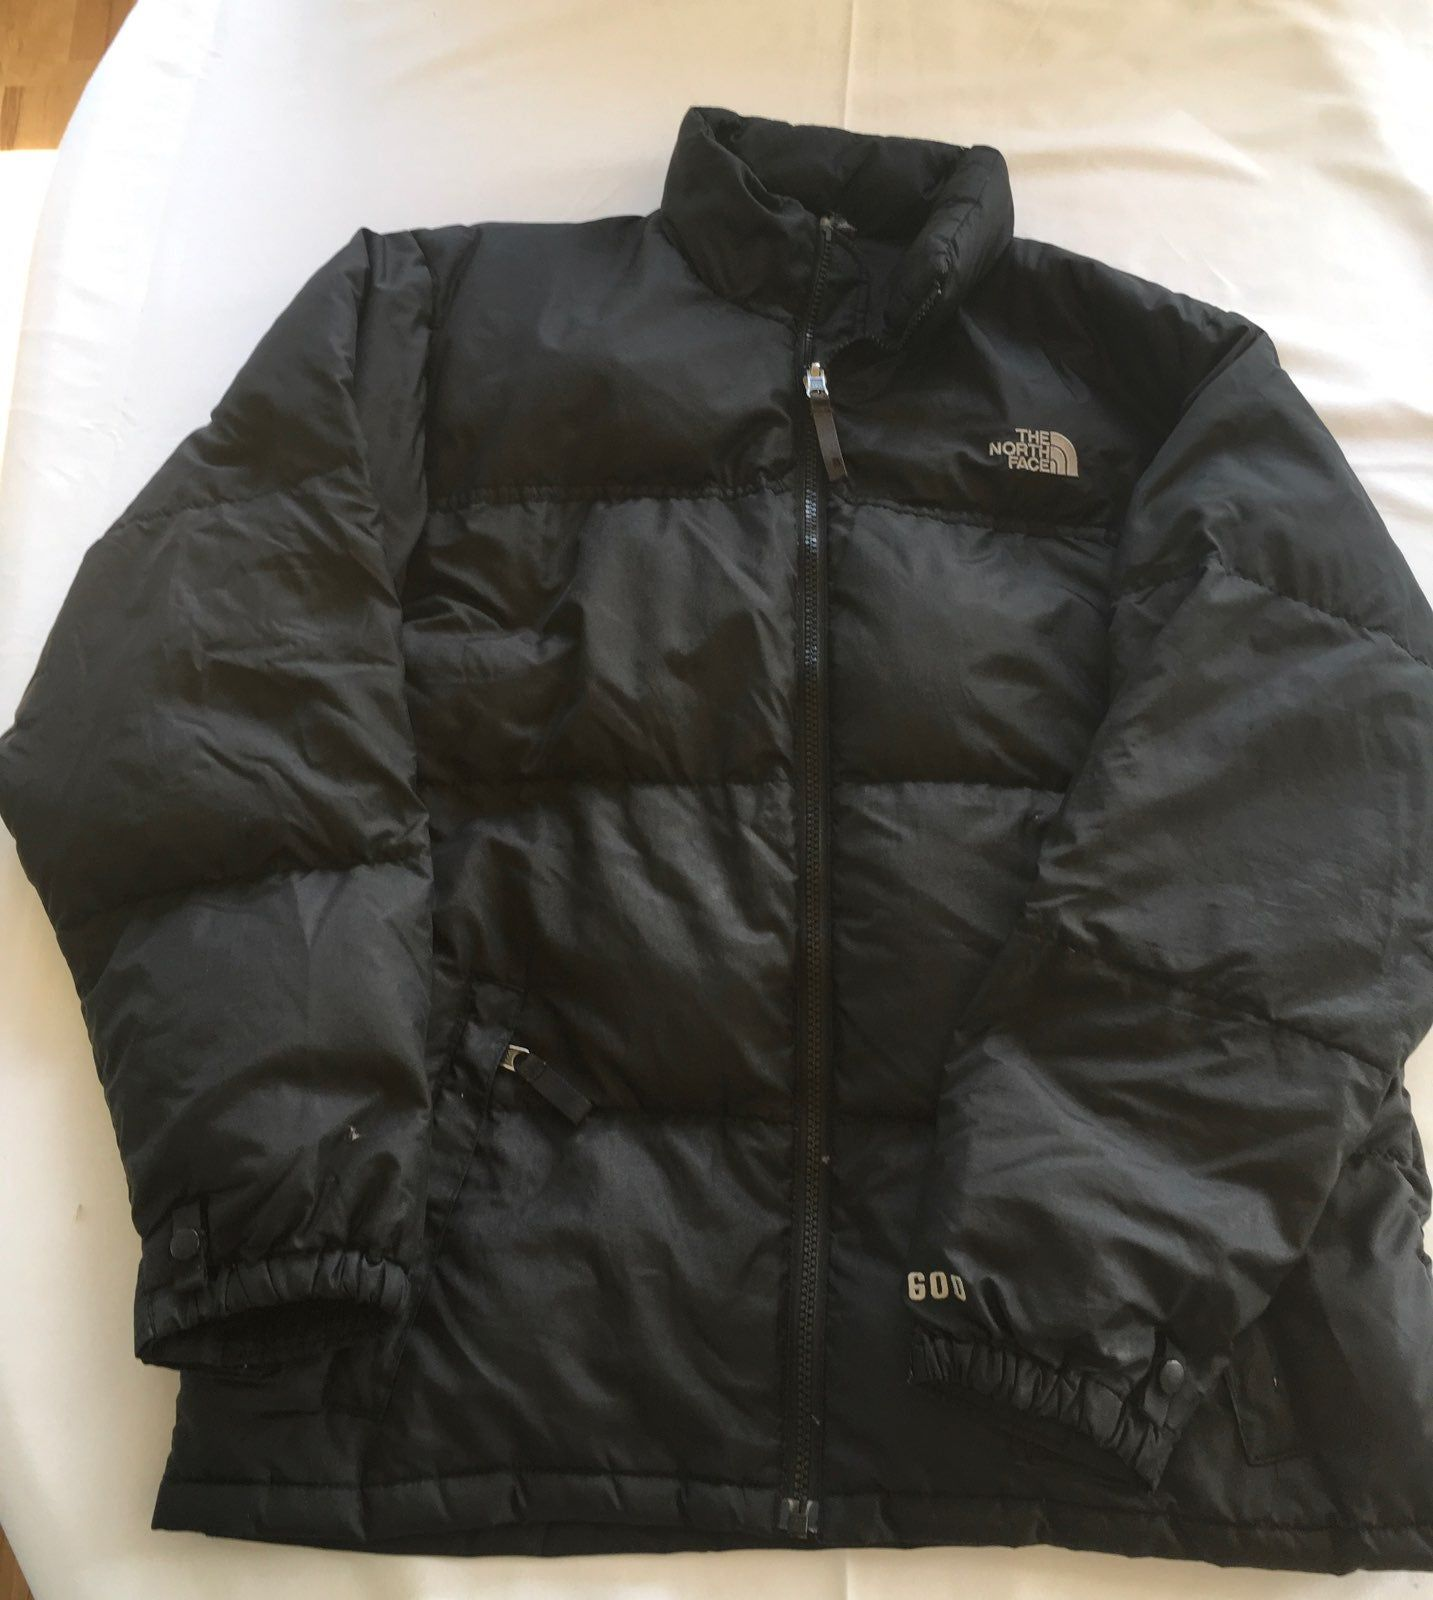 The North Face Puffer Jacket Xl Tg Black The North Face Puffer Jacket North Face Puffer Jacket Jackets [ 1600 x 1433 Pixel ]